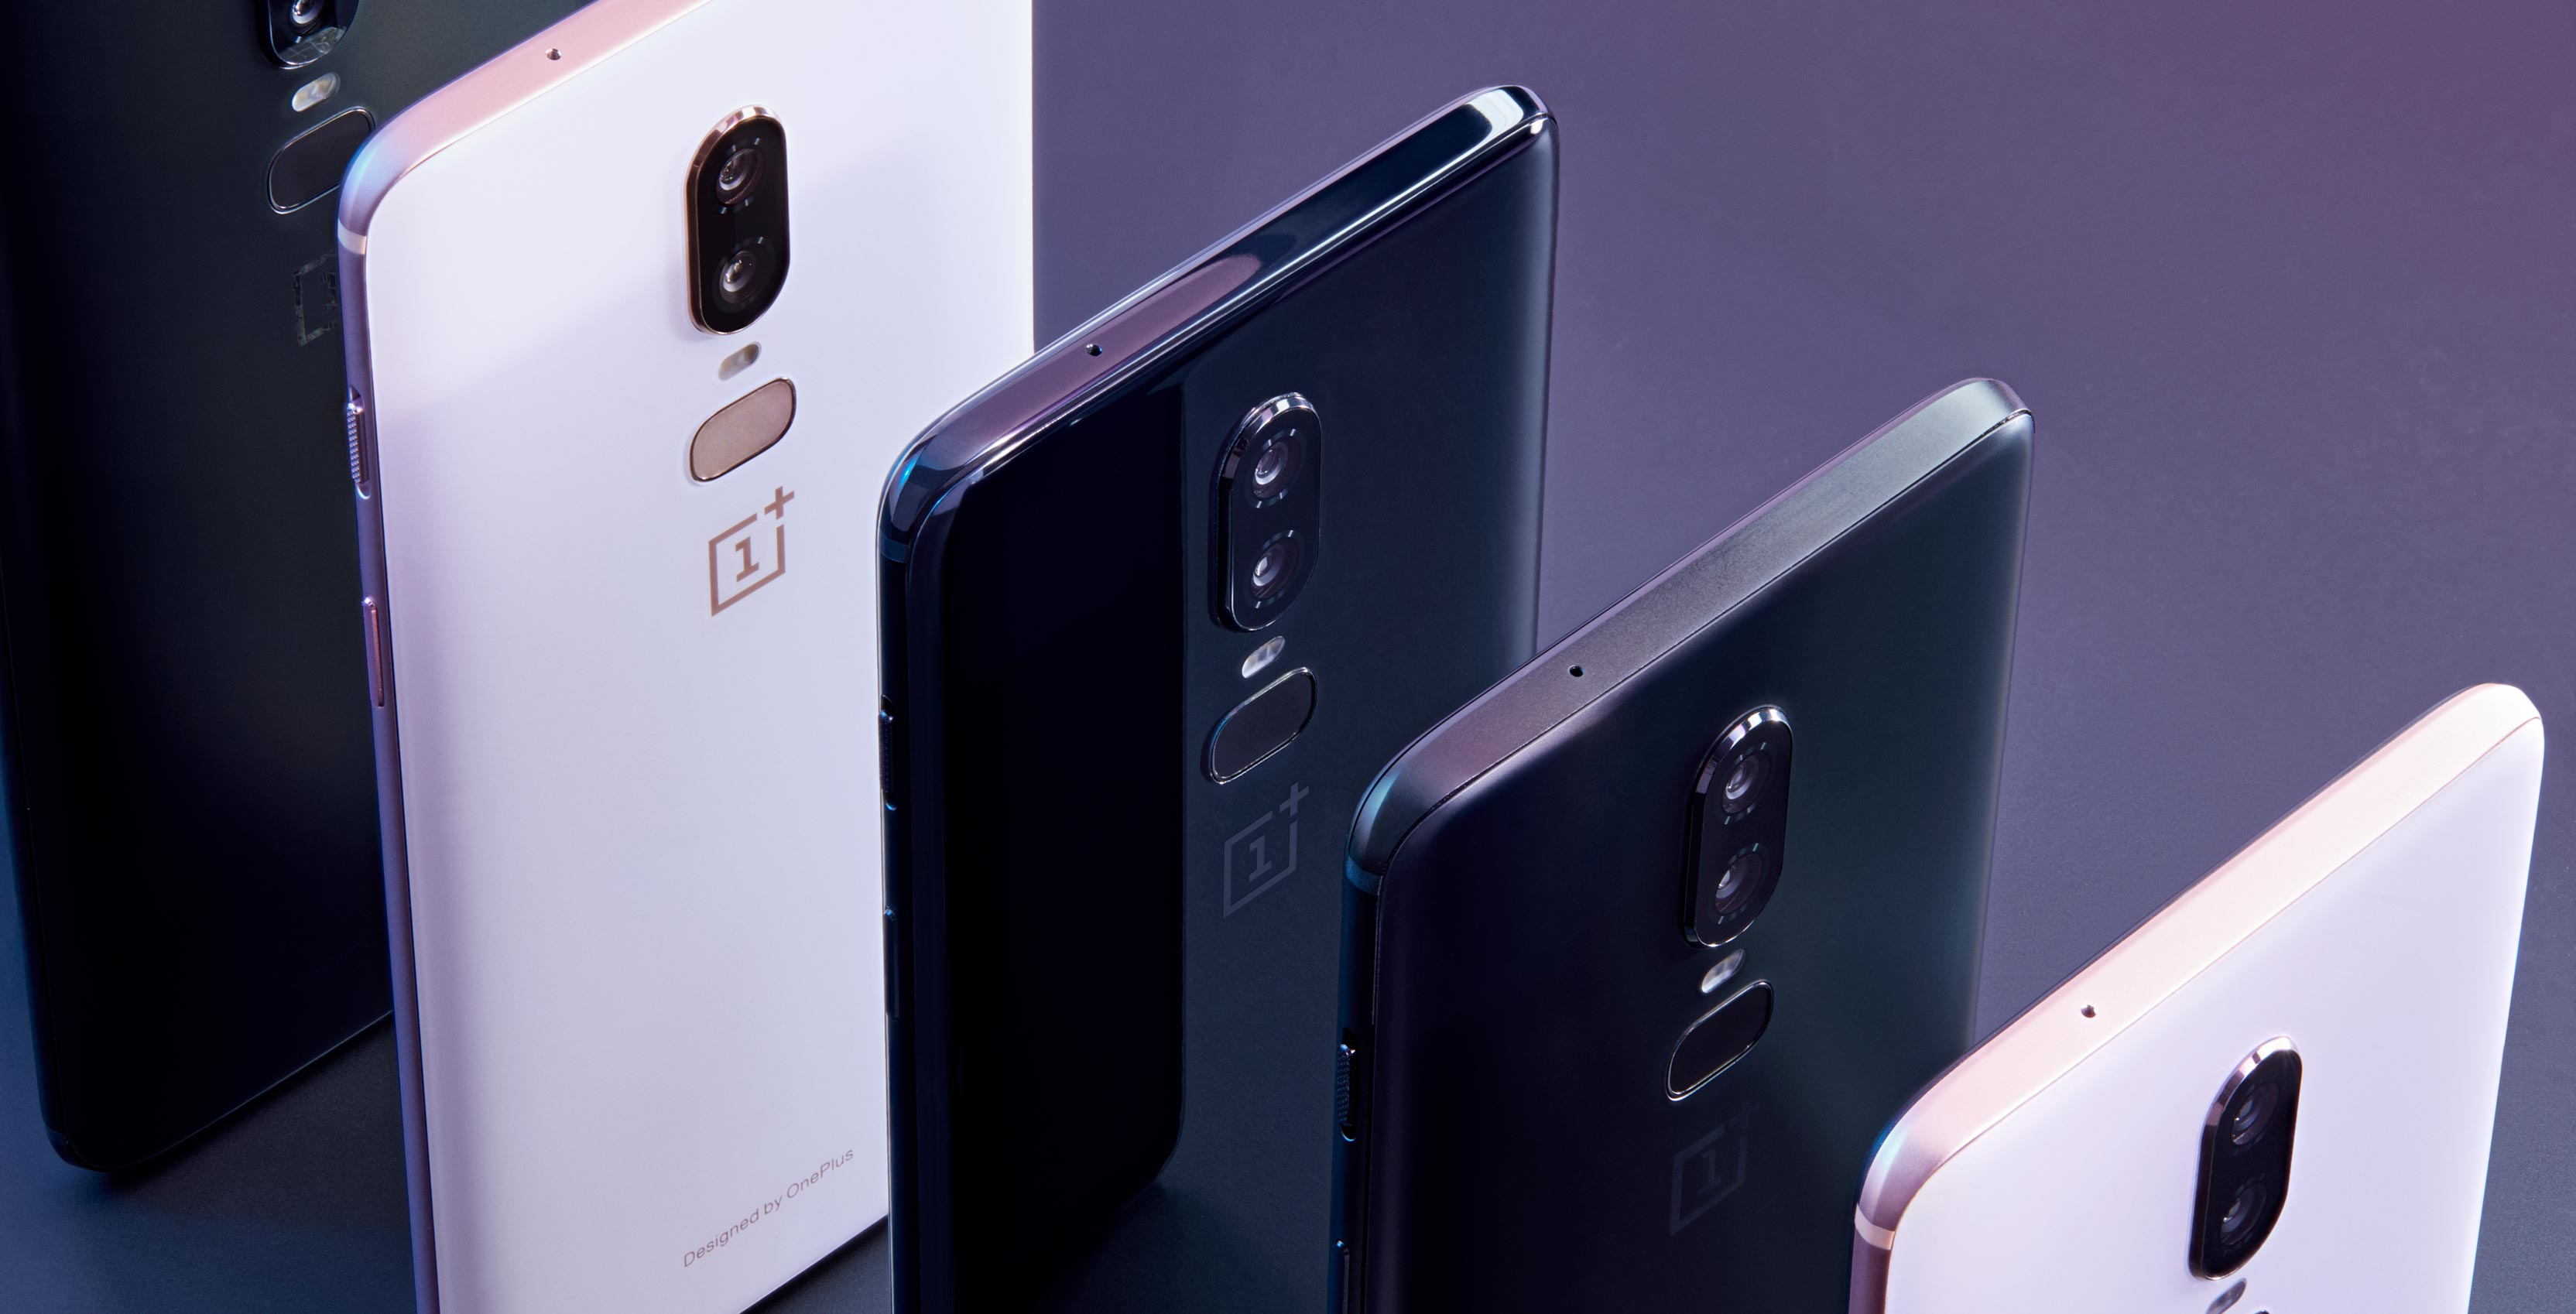 OnePlus 6 devices in a row